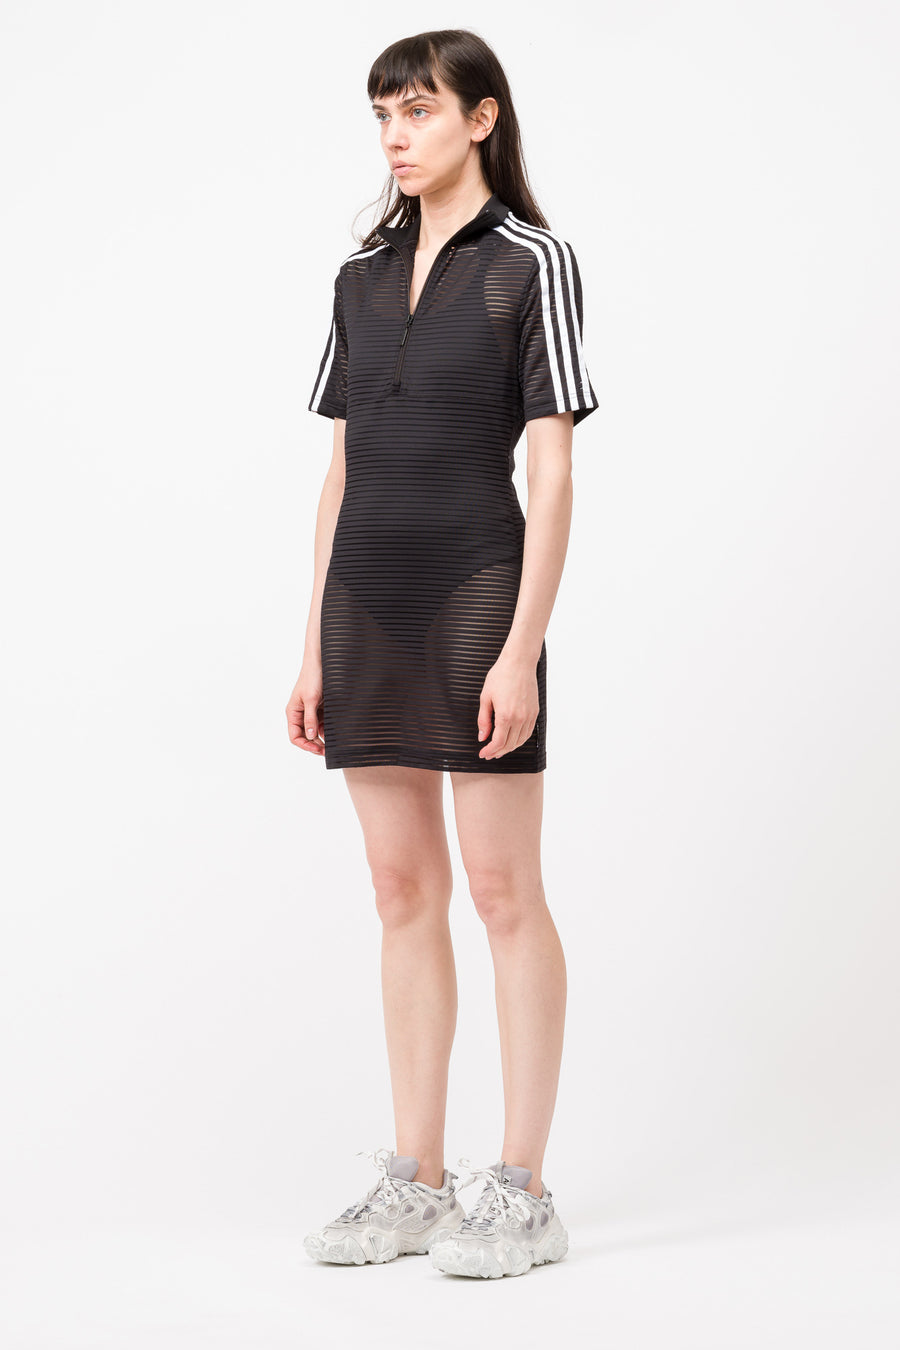 adidas Firebird Dress in Black - Notre